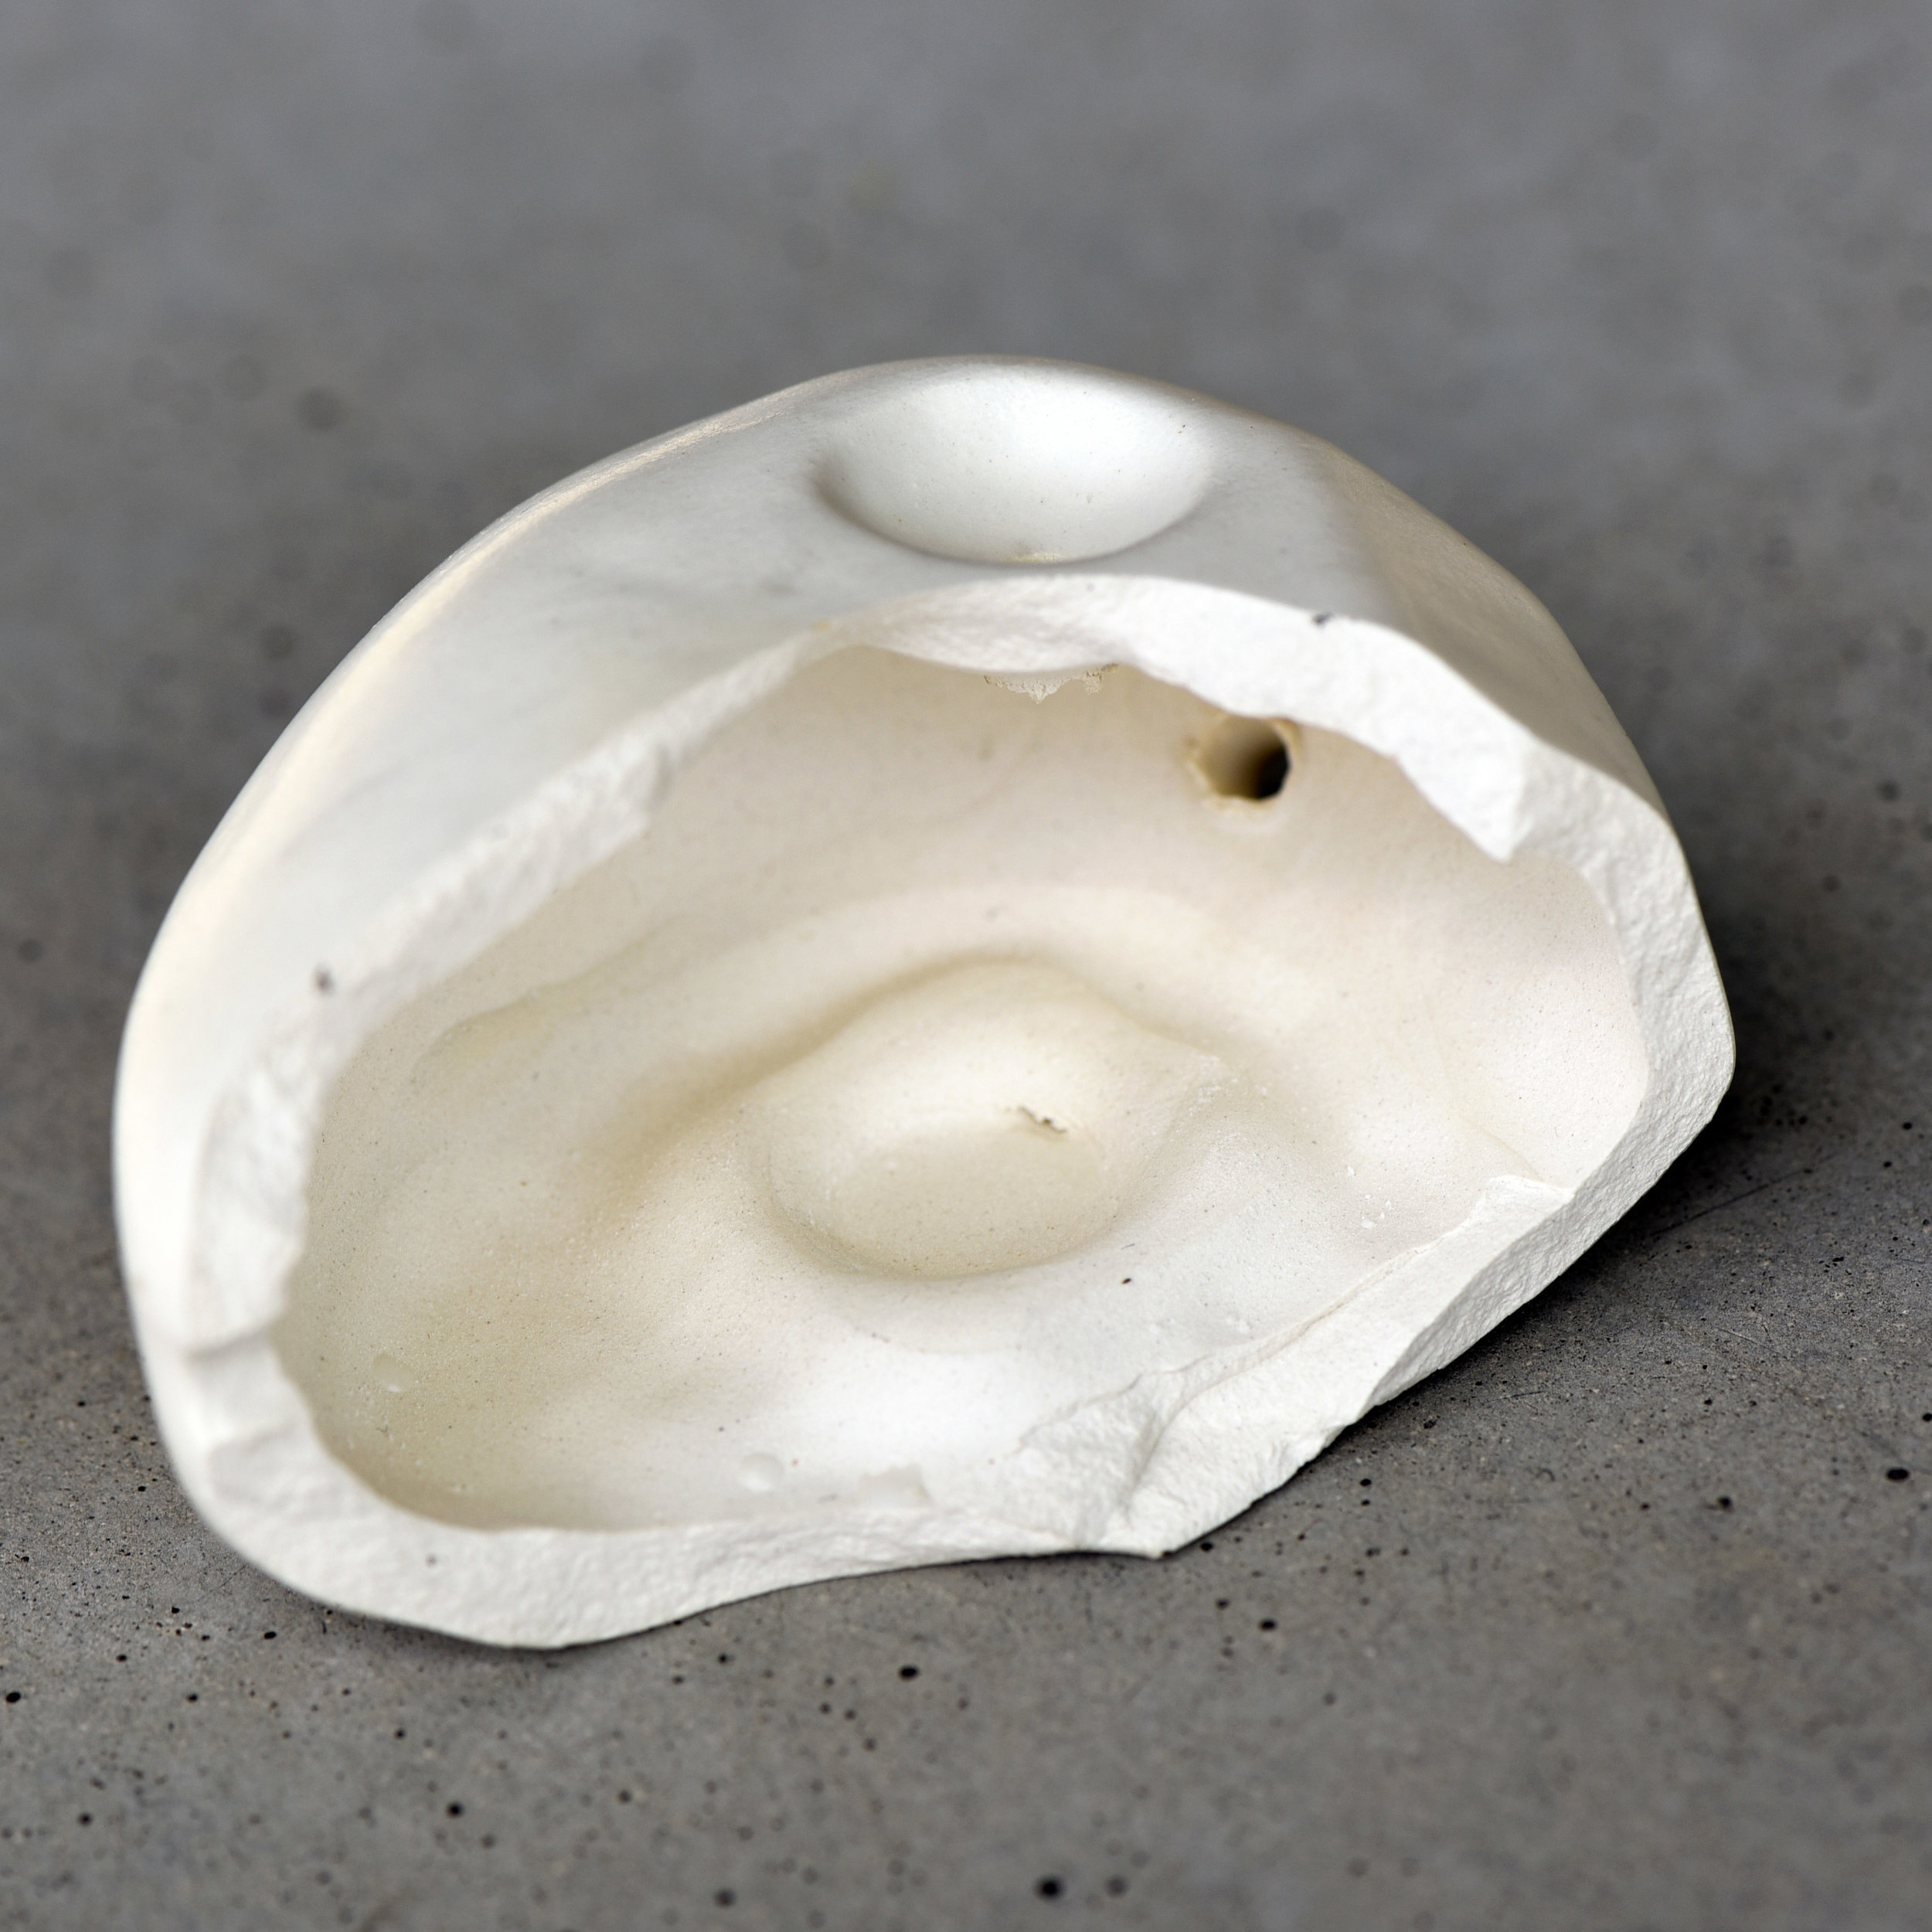 A cross-section of a Faceted Stone pipe, showing the hollow interior: very clog resistant!